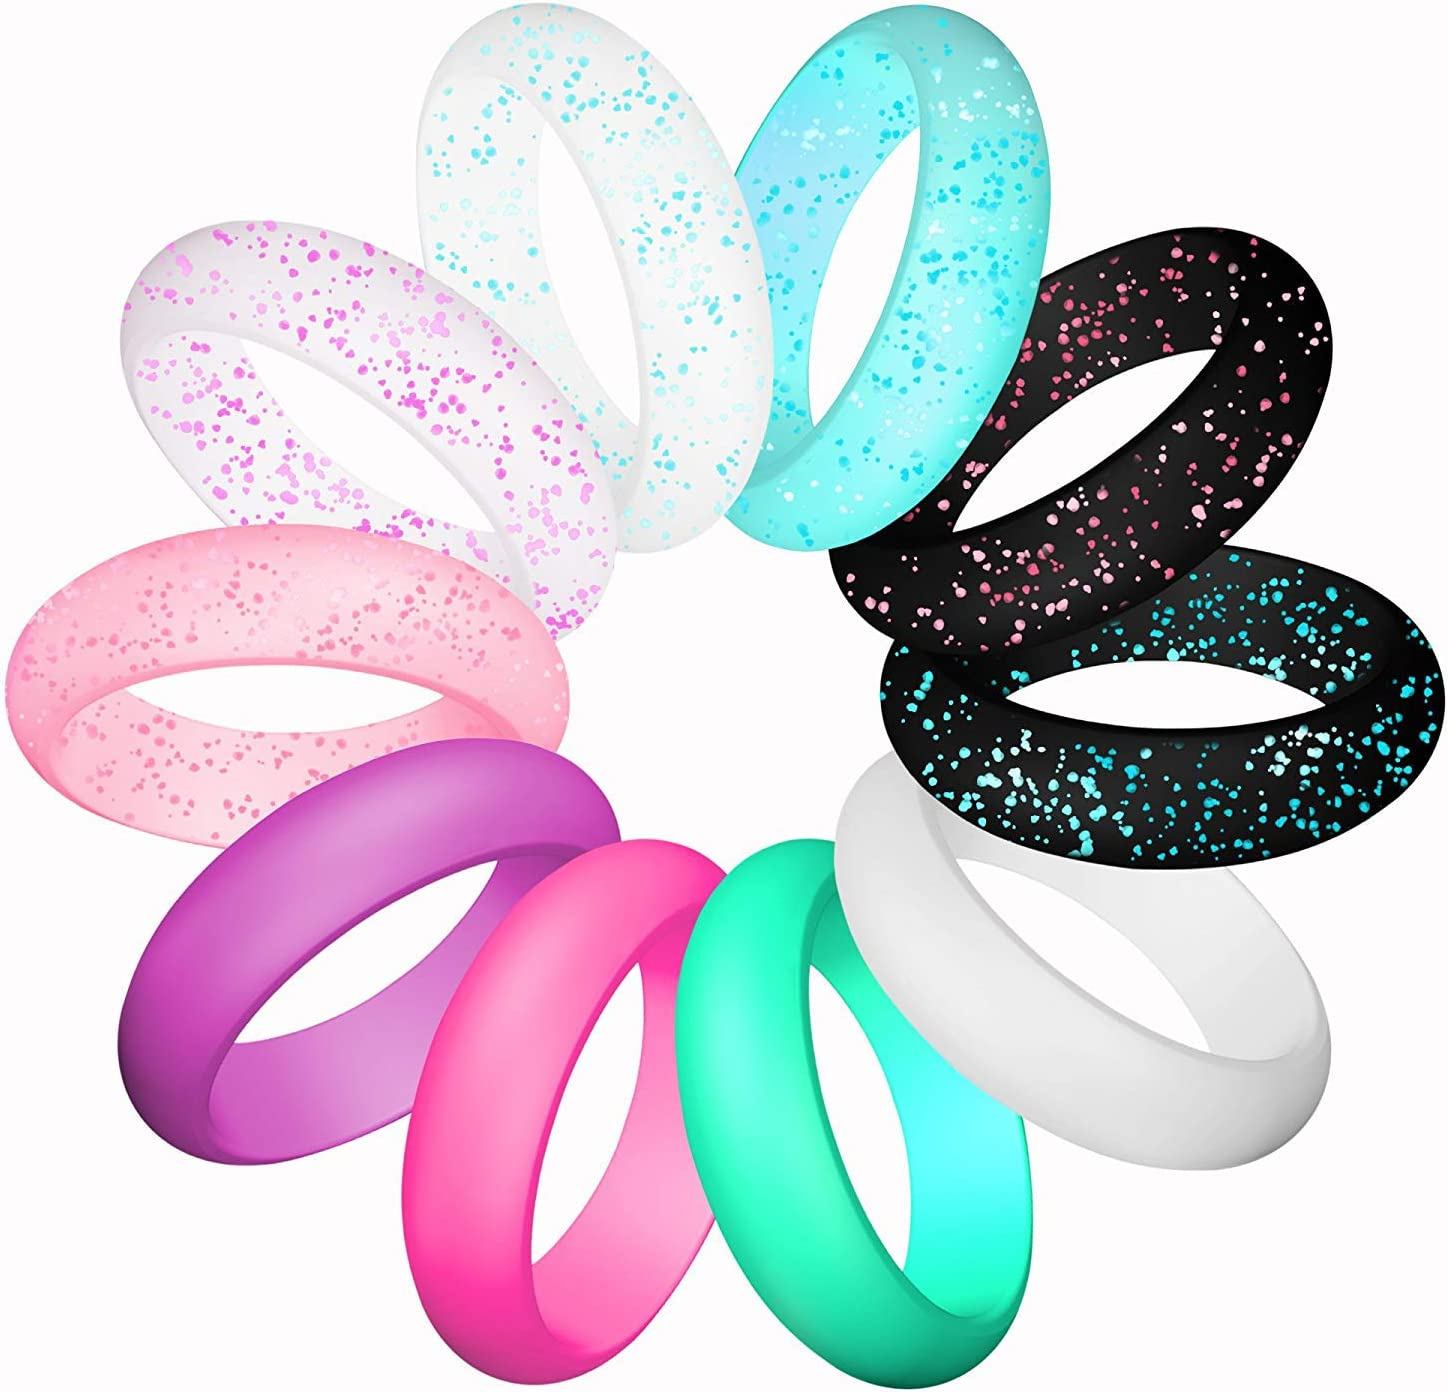 LUNIQI Silicone Wedding Ring for Women, Thin and Stackable Durable Rubber Safe Band for Love, Couple, Souvenir and Outdoor Active Exercise Style-10 Rings Pack